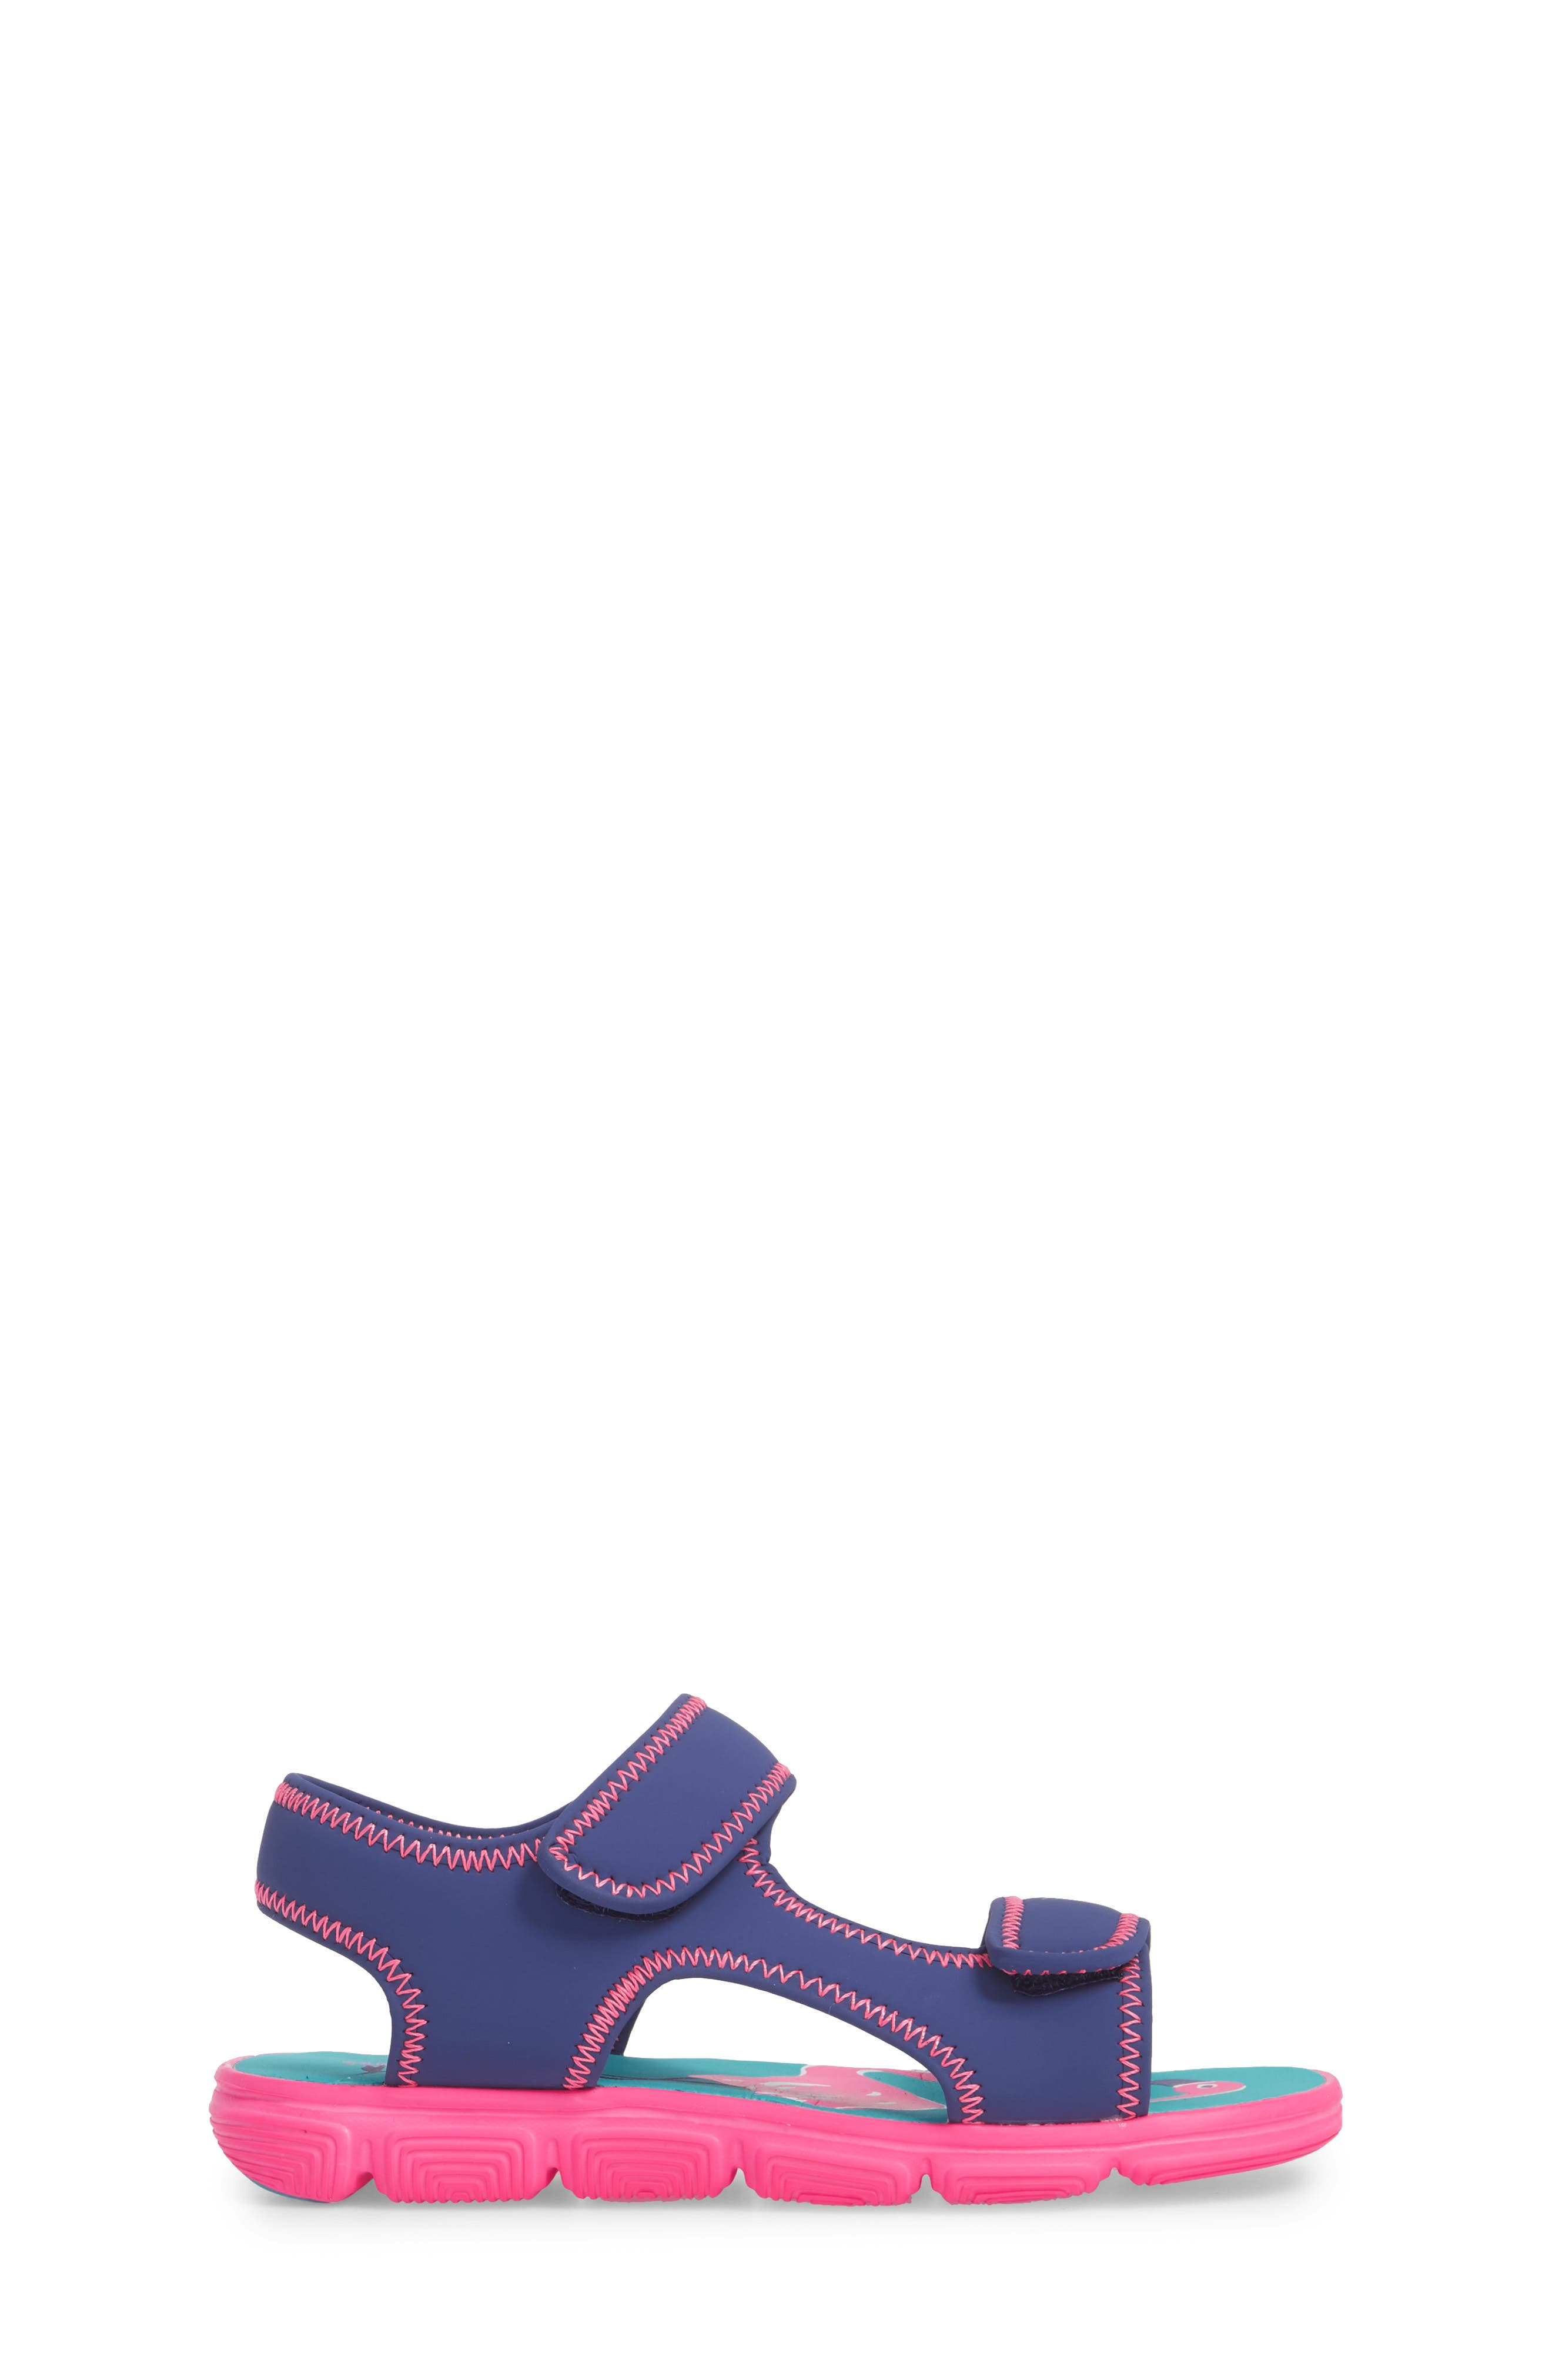 Everly Water Sandal,                             Alternate thumbnail 3, color,